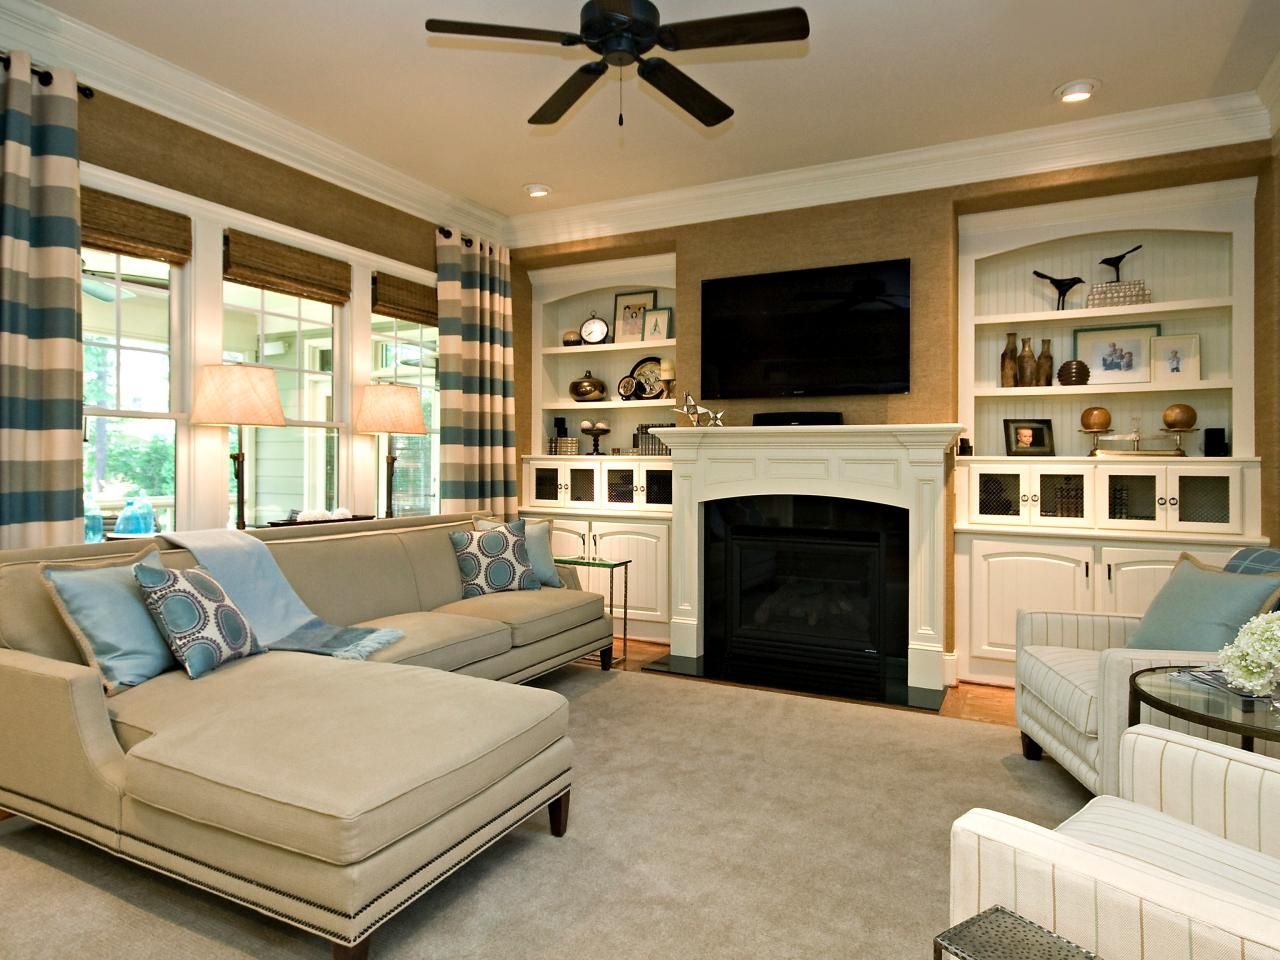 Matching White Builtins Flank The Traditional Fireplace In This Cool Family Living Room Interior Decorating Inspiration